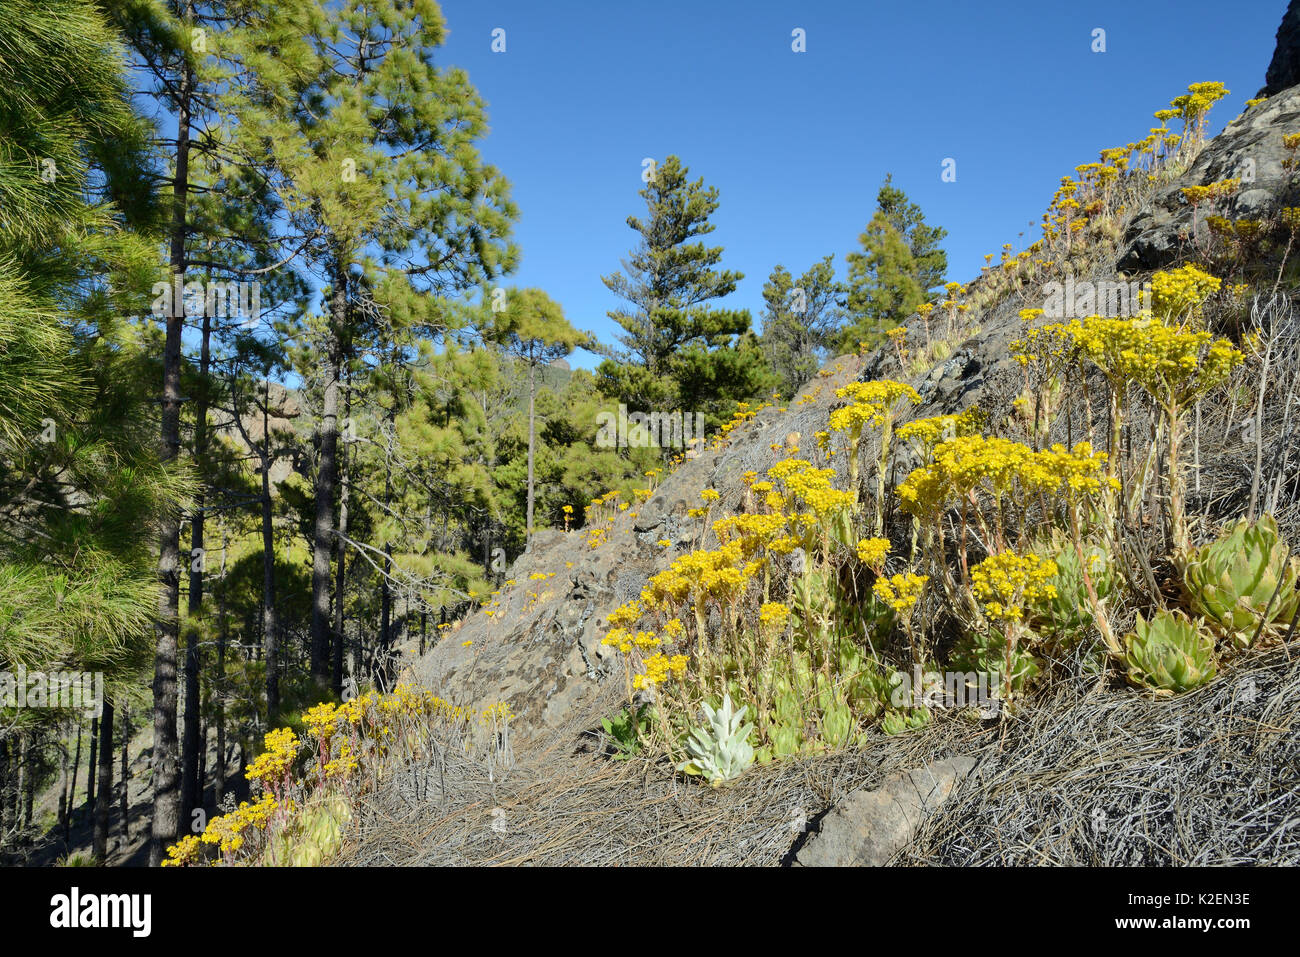 Endemic Aeonium / Tree houseleek (Aeonium simsii) flowering on volcanic mountain slope near a stand of Canary Island Pines (Pinus canariensis), Gran Canaria UNESCO Biosphere Reserve, Gran Canaria, Canary Islands. May 2016. Stock Photo